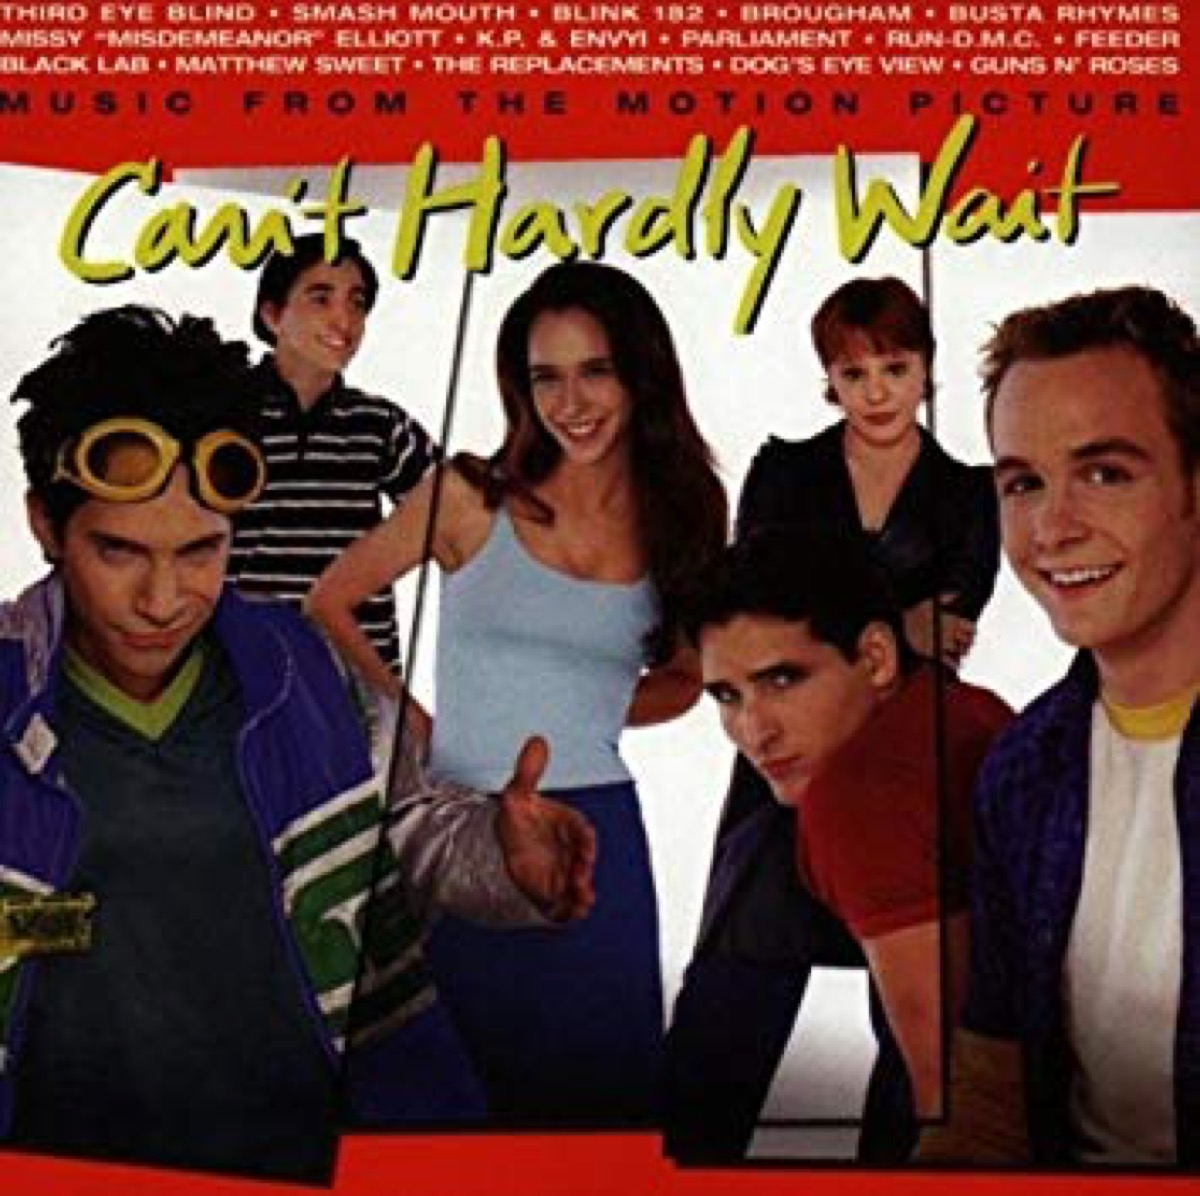 can't hardly wait movie soundtrack album cover